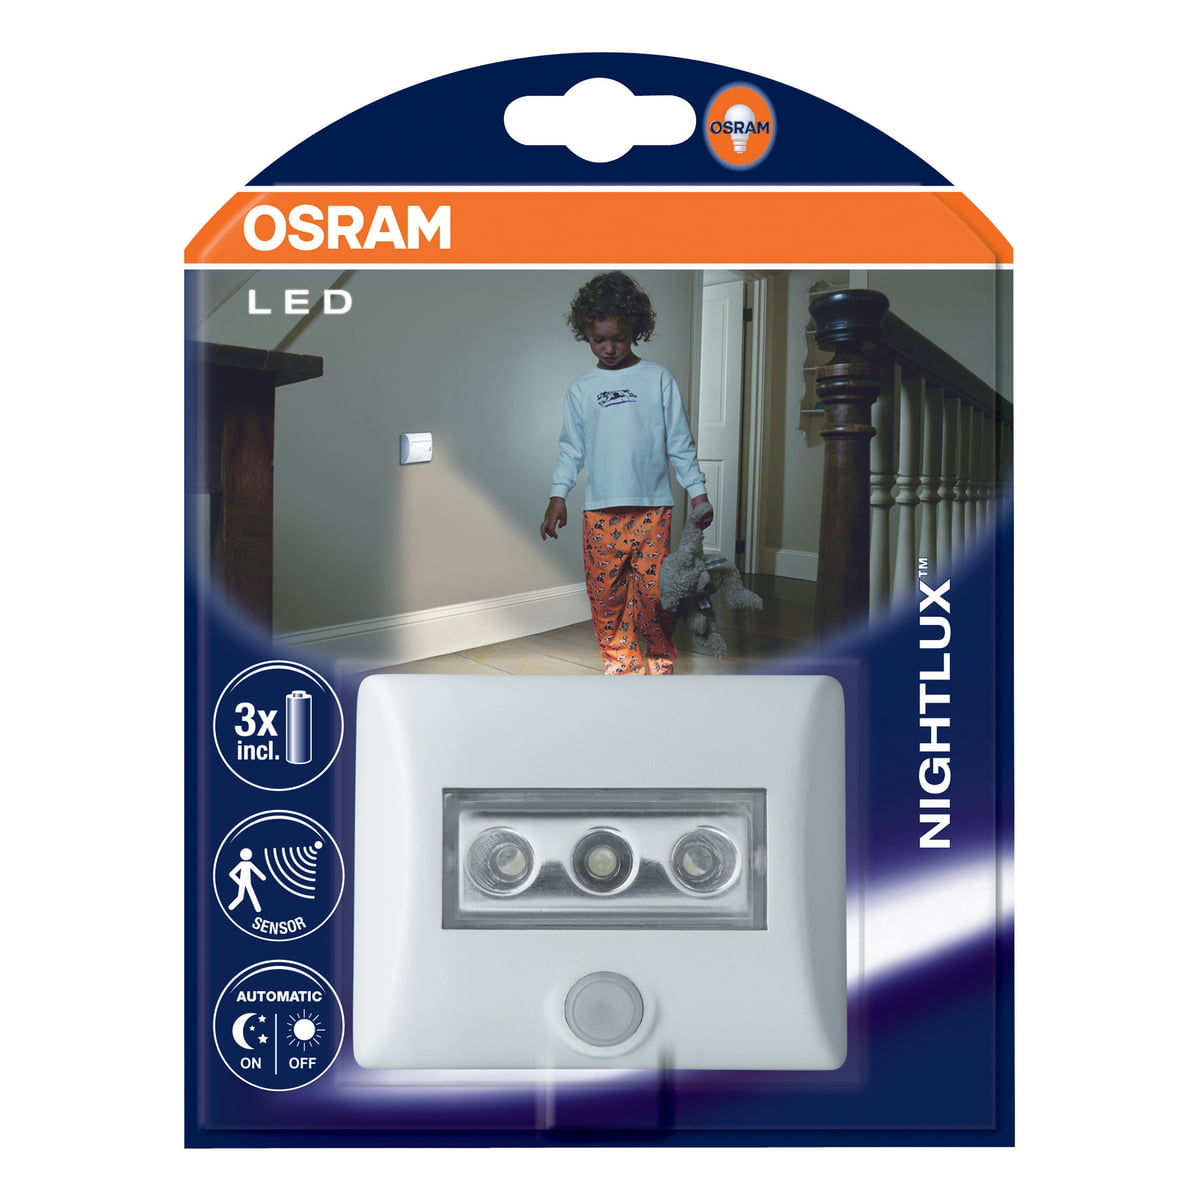 nightlux led orientation light by osram. Black Bedroom Furniture Sets. Home Design Ideas